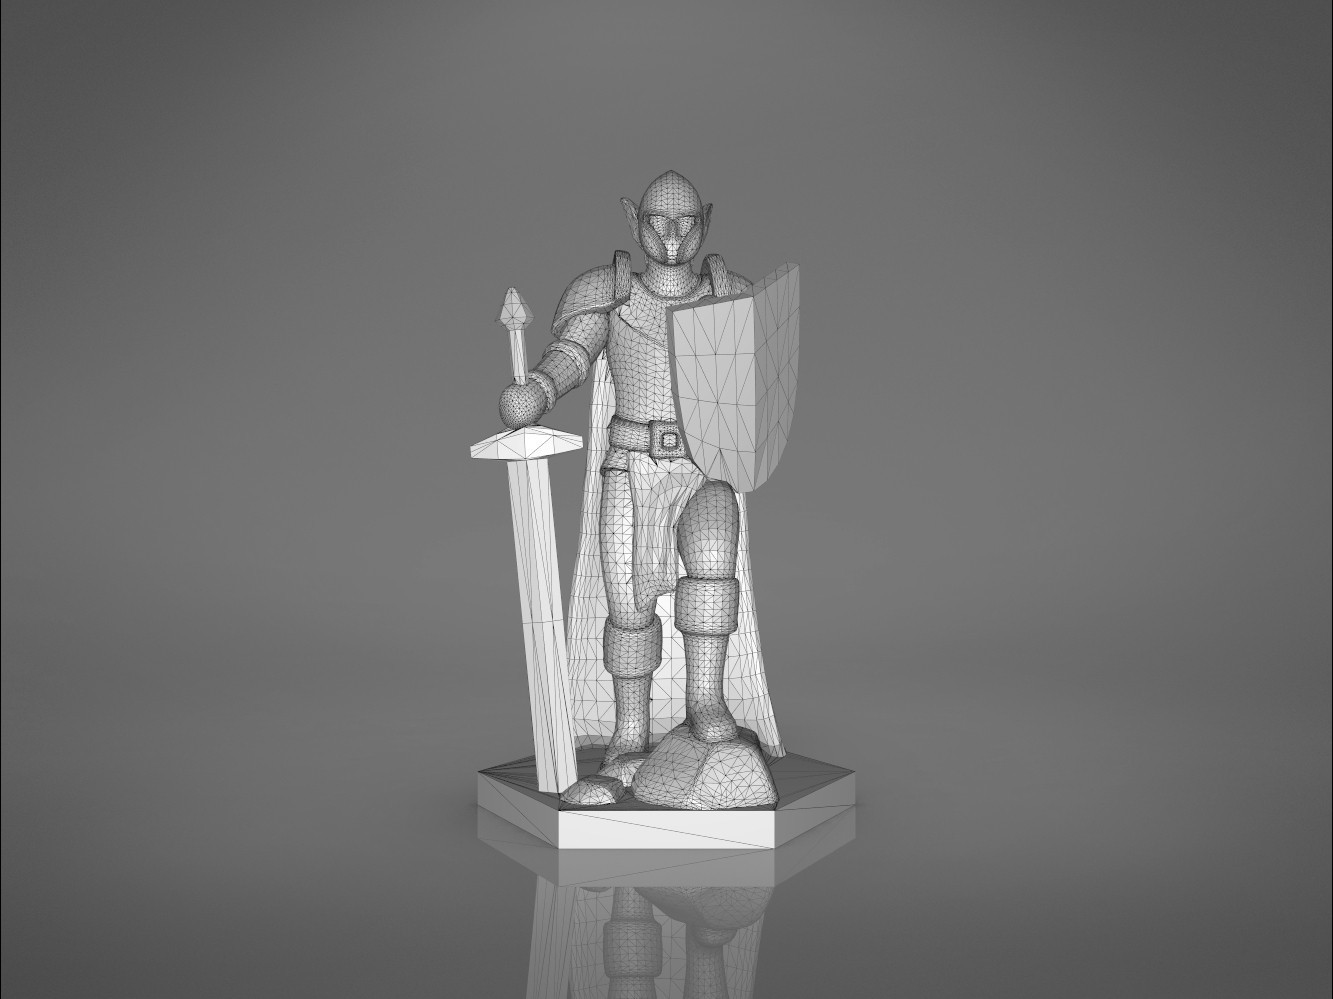 Warrior-front_perspective.375.jpg Download STL file ELF WARRIOR CHARACTER GAME FIGURE 3D print model • Object to 3D print, 3D-mon